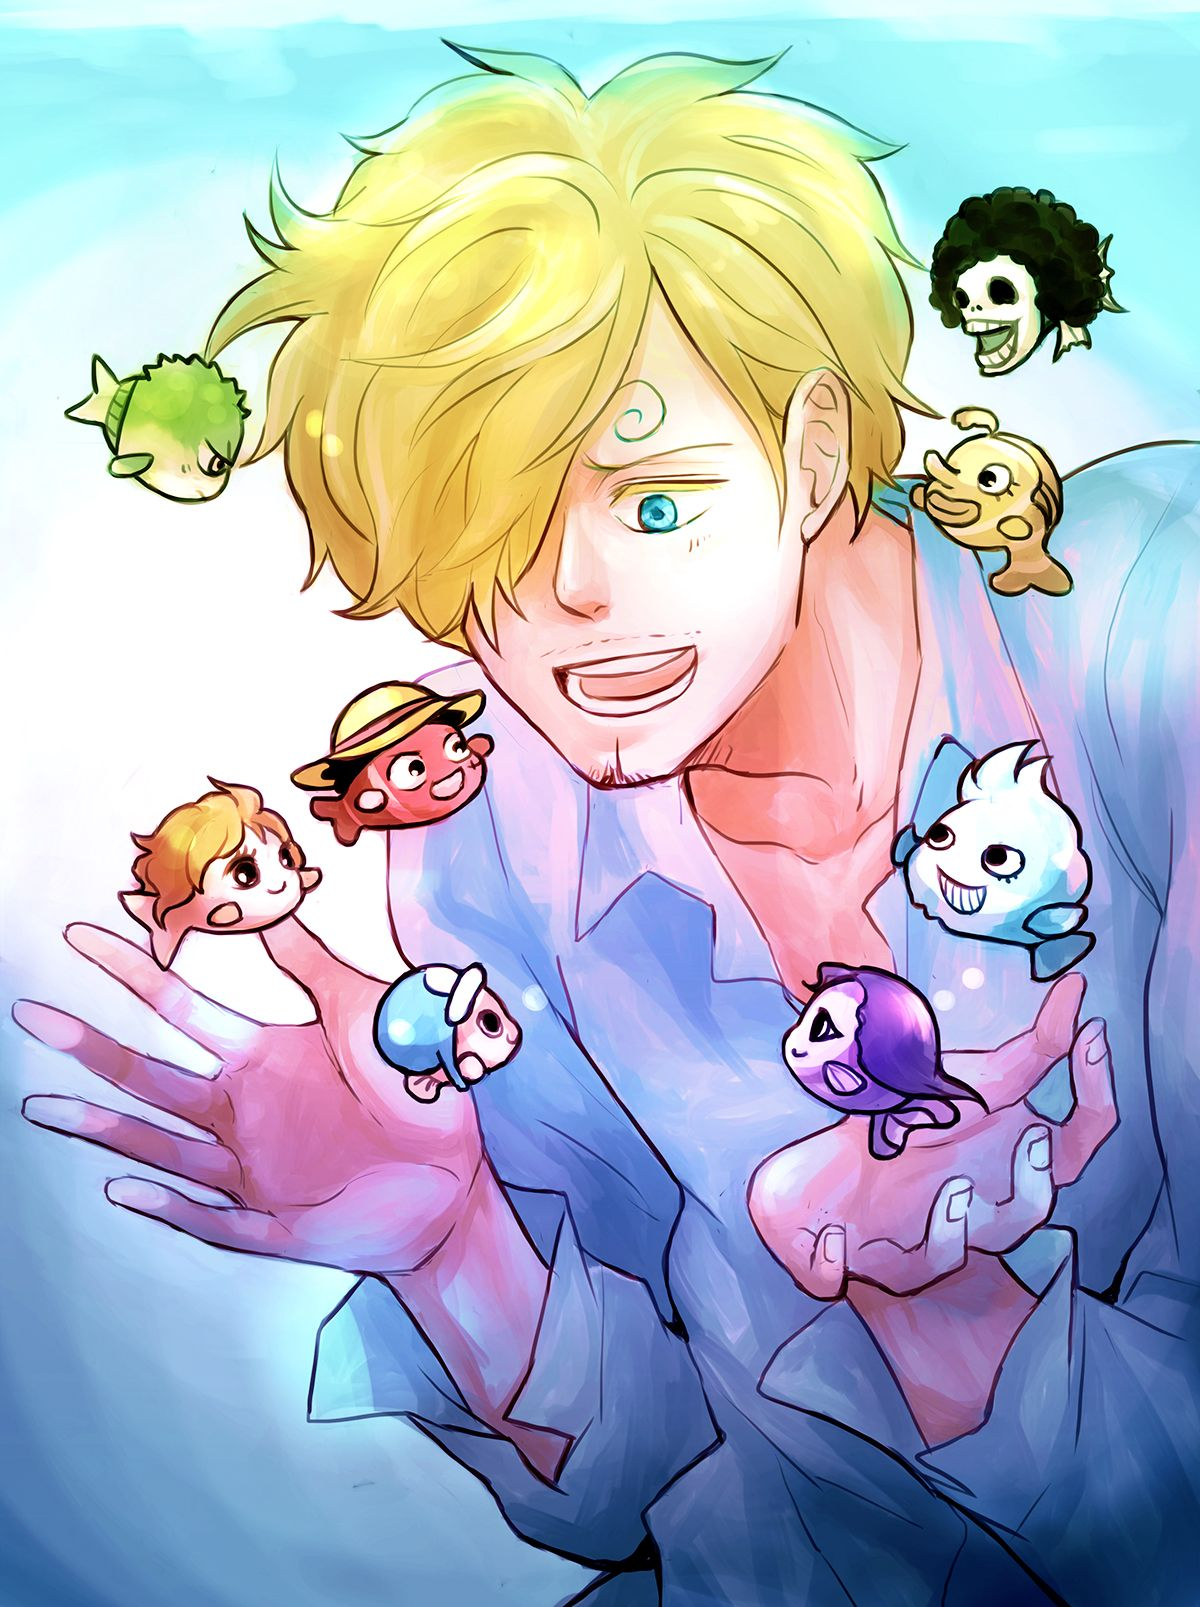 Sanji and straw hats pirate crew Monkey D. Luffy, Tony Tony Chopper, Roronoa Zoro, Brook, Usopp, Nami, Franky, Nico Robin One piece